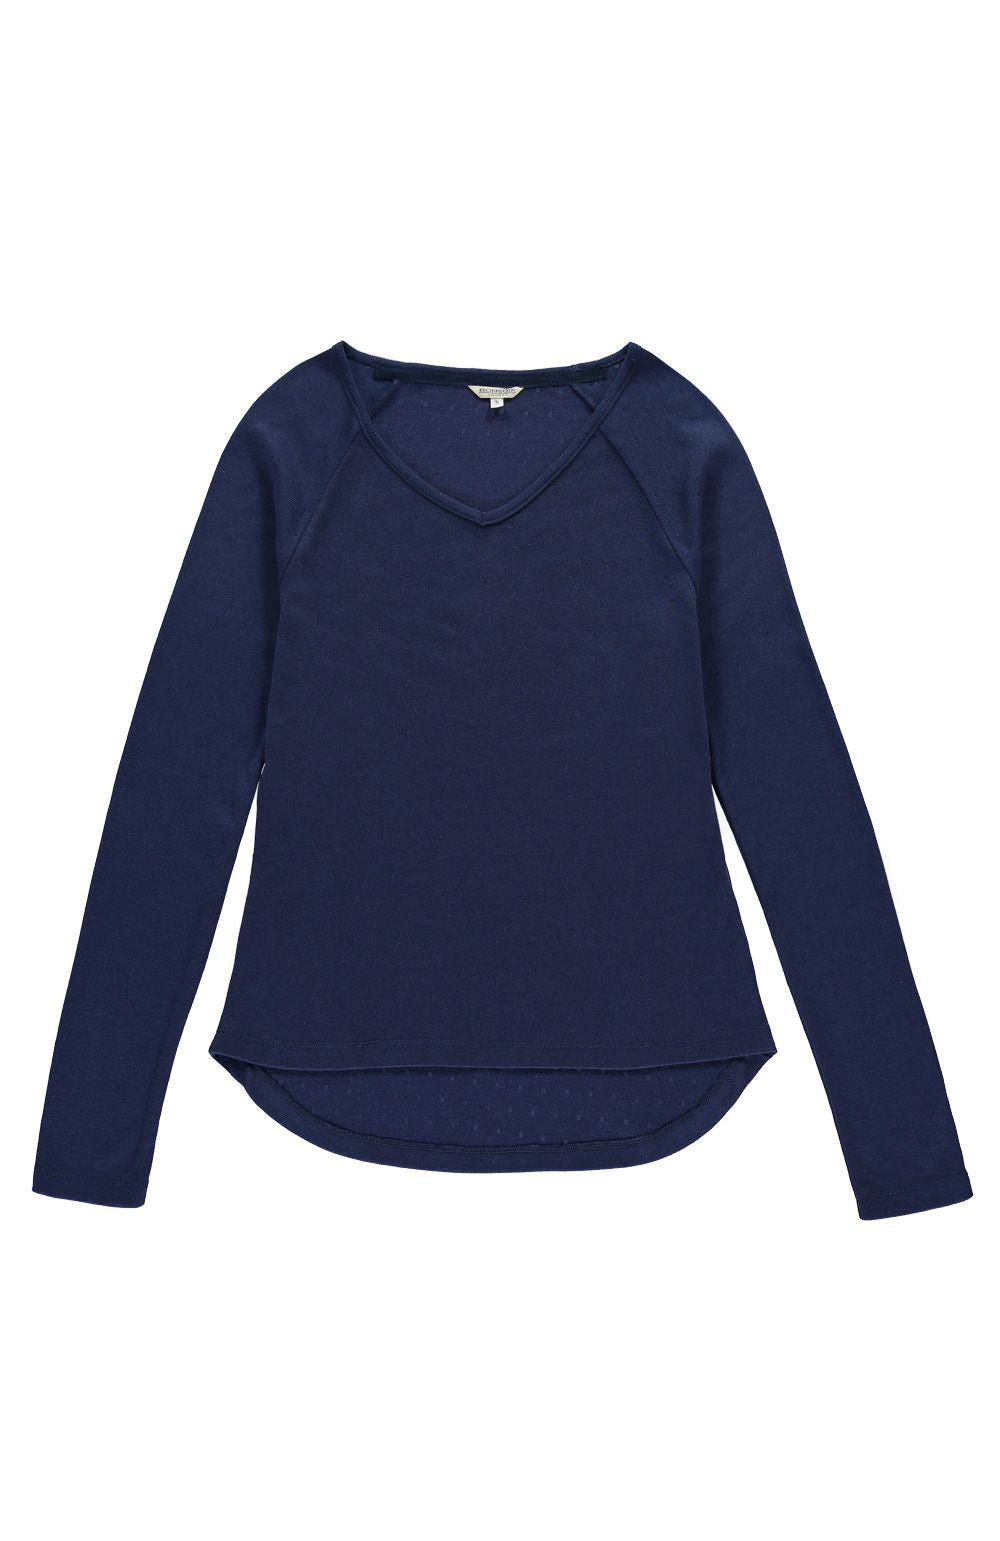 Pointelle Raglan Sleeve Top (lkpr) - Midnight